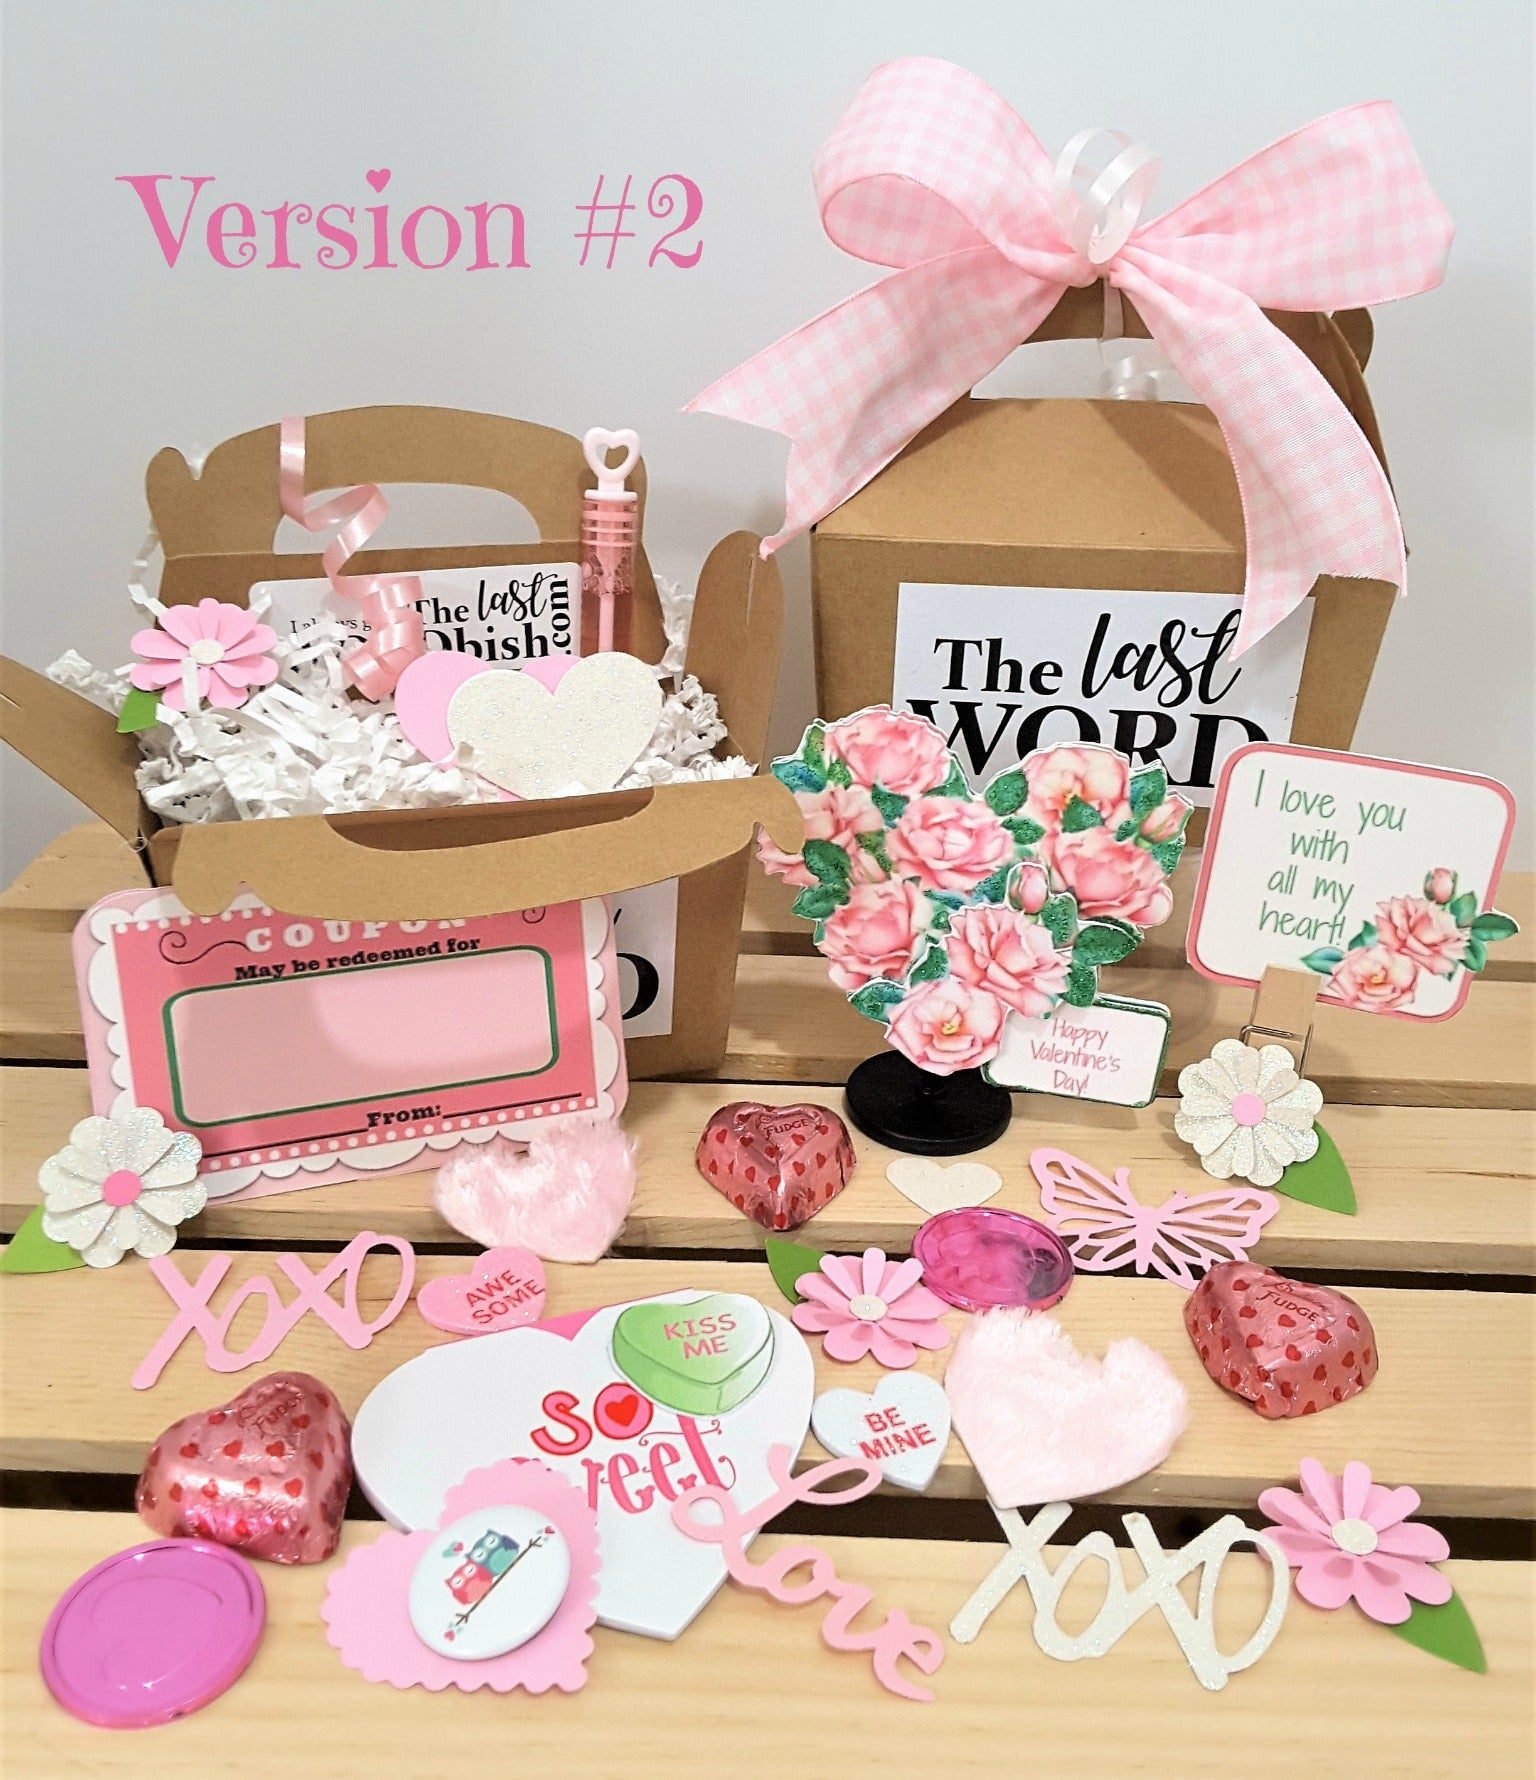 VALENTINE'S DAY PINK FLORAL HEART 3D GREETING CARD GIFT - 2 VERSIONS